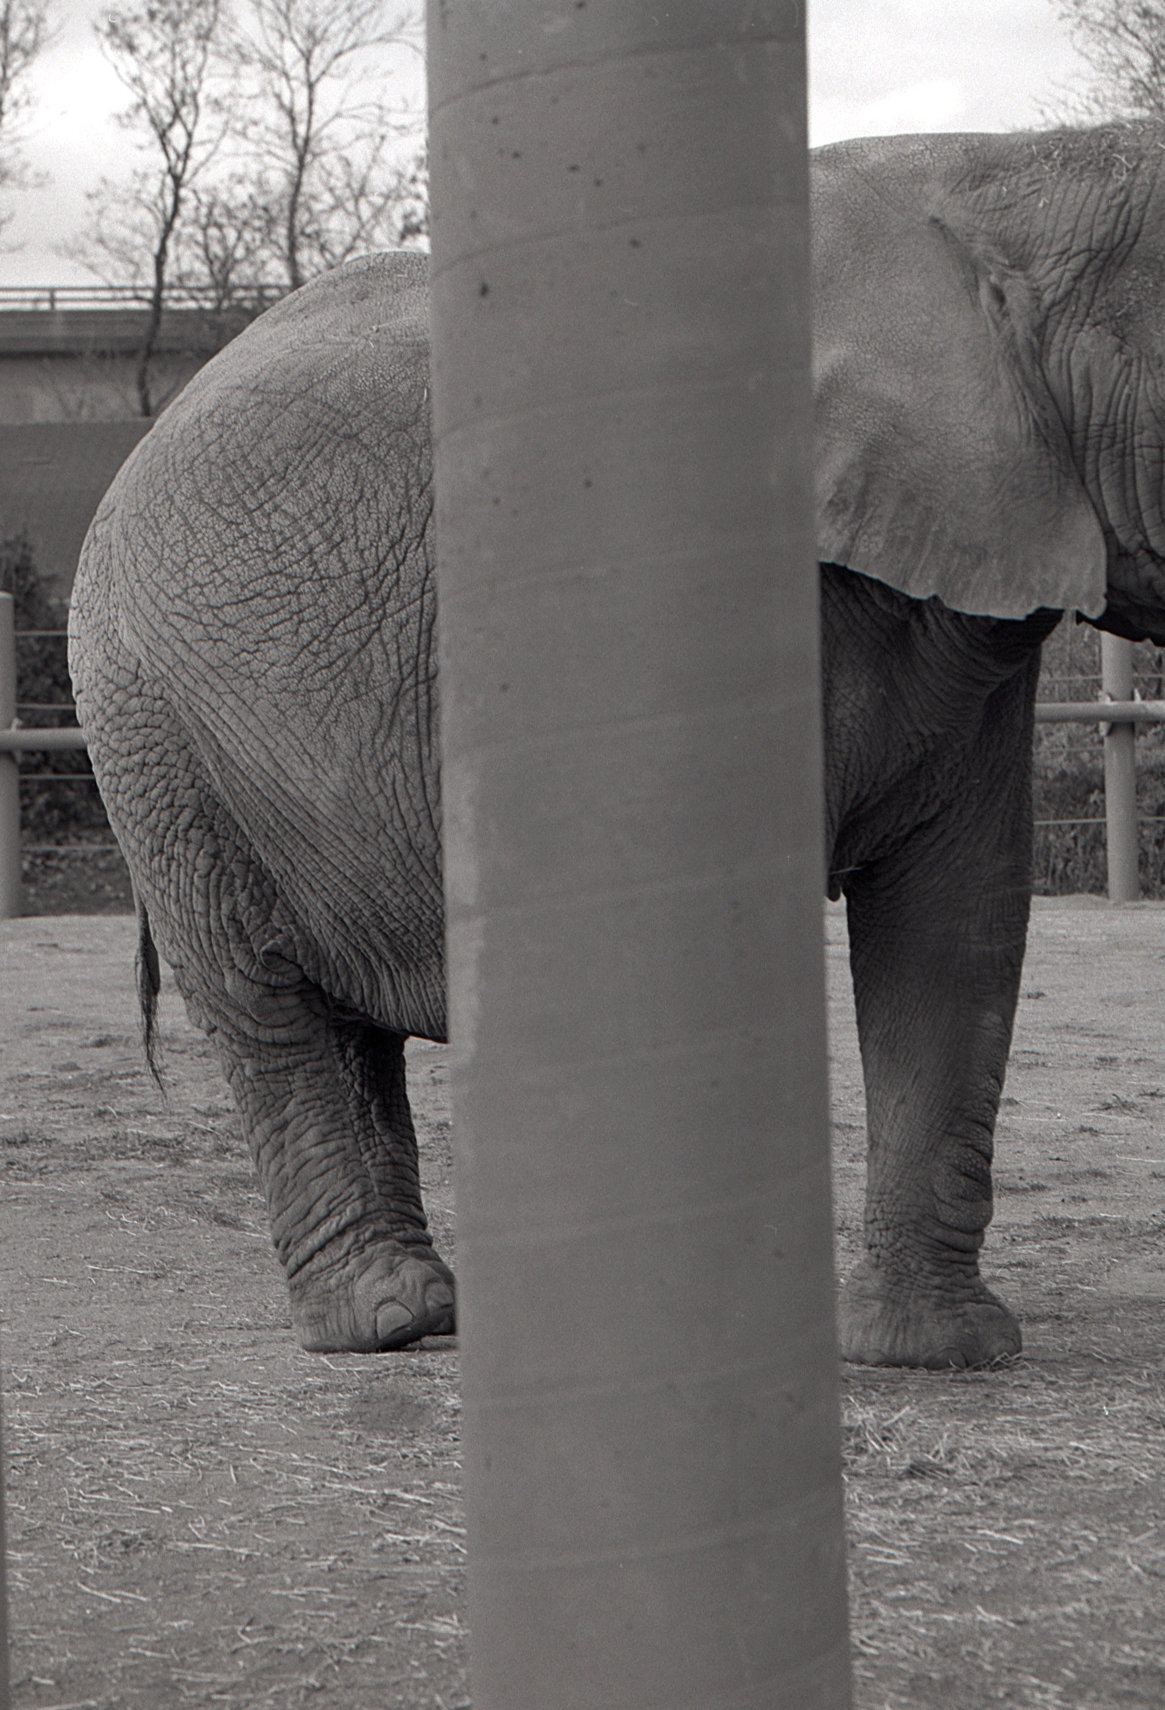 #10  Elephant Forms Series